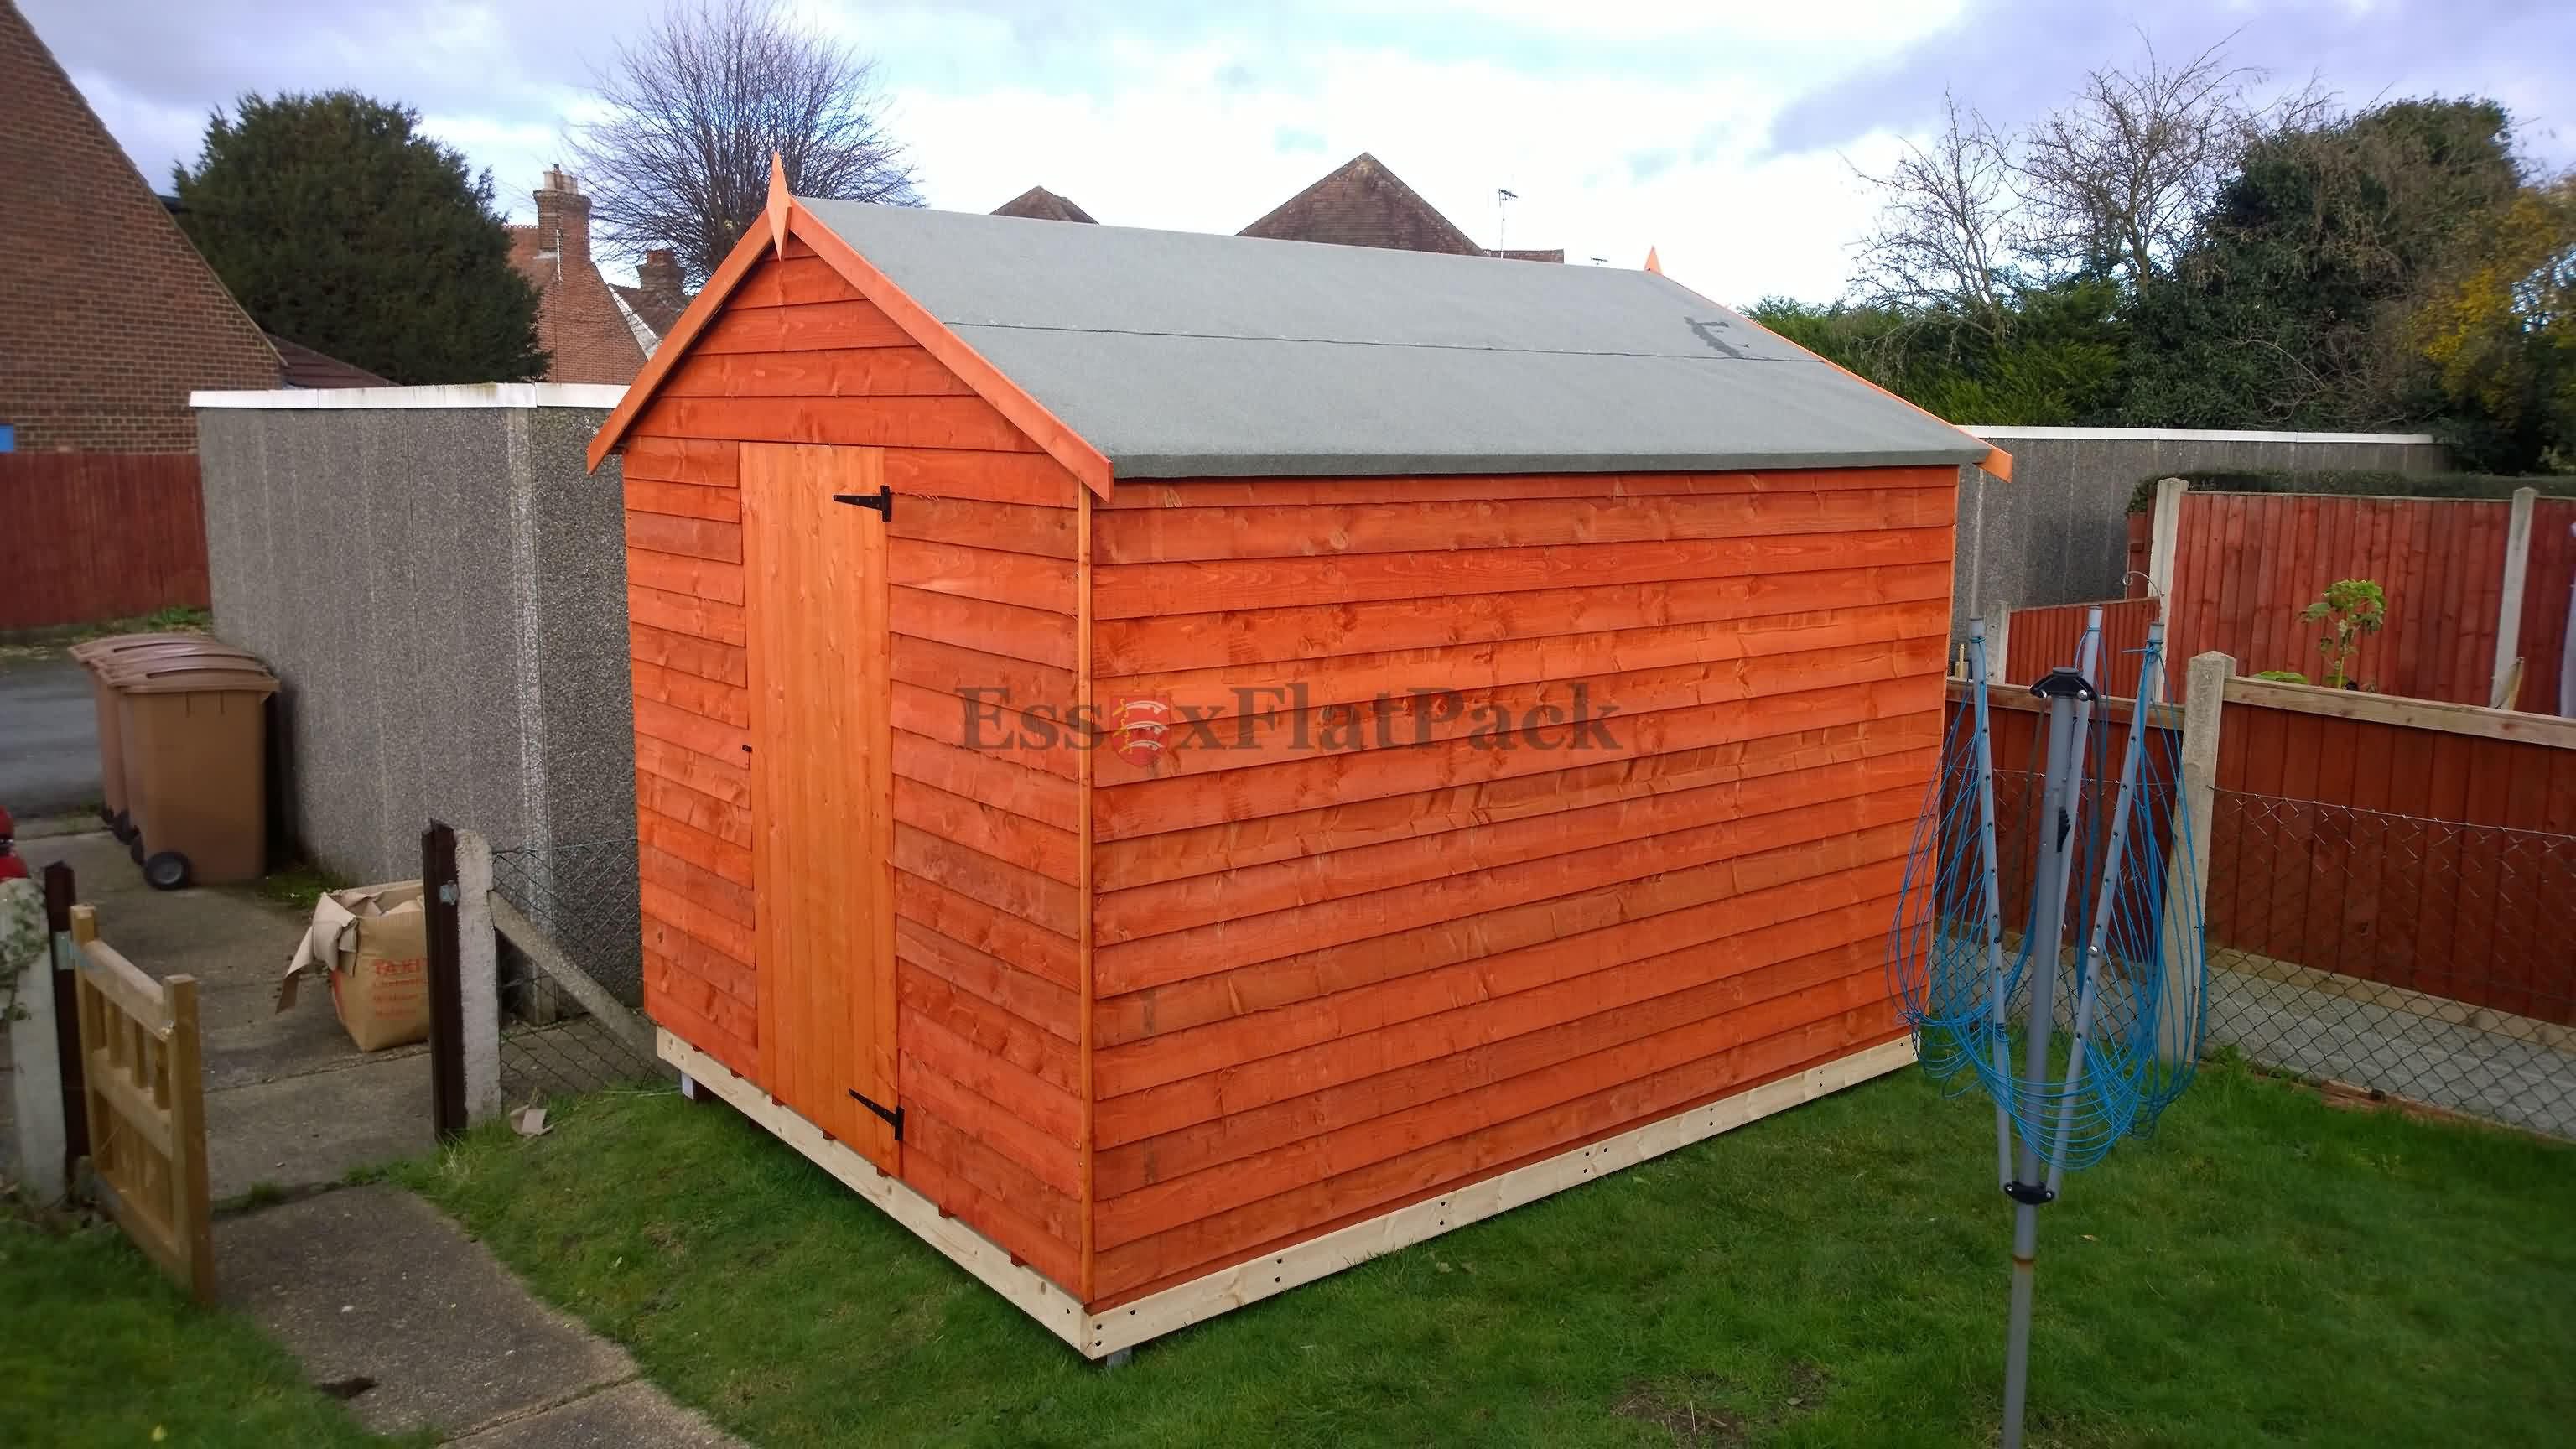 shed-installation-and-assembly-service-8.jpg